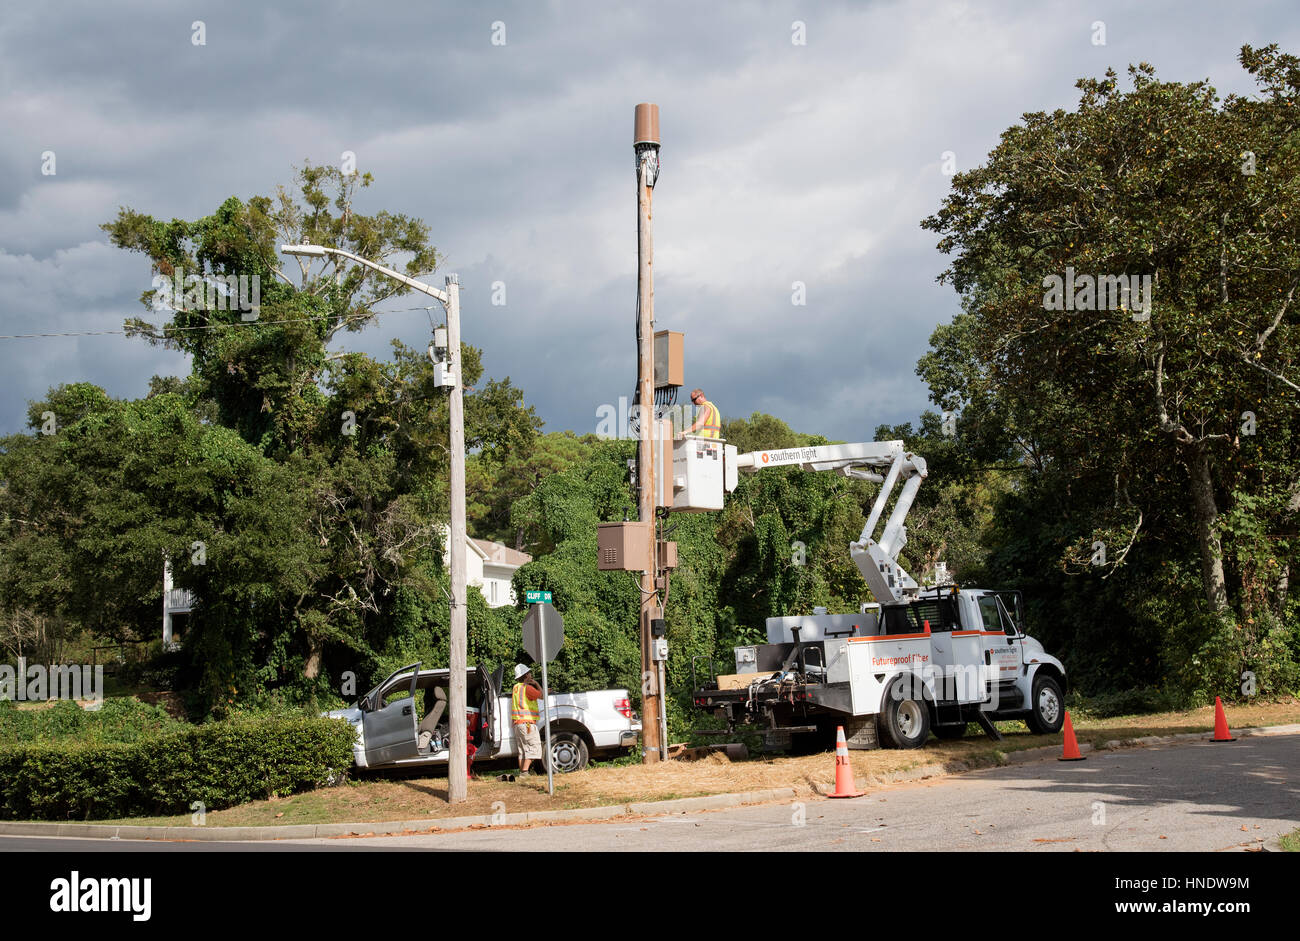 Fiber optics engineers working at Fairhope in Baldwin County Alabama USA - Stock Image